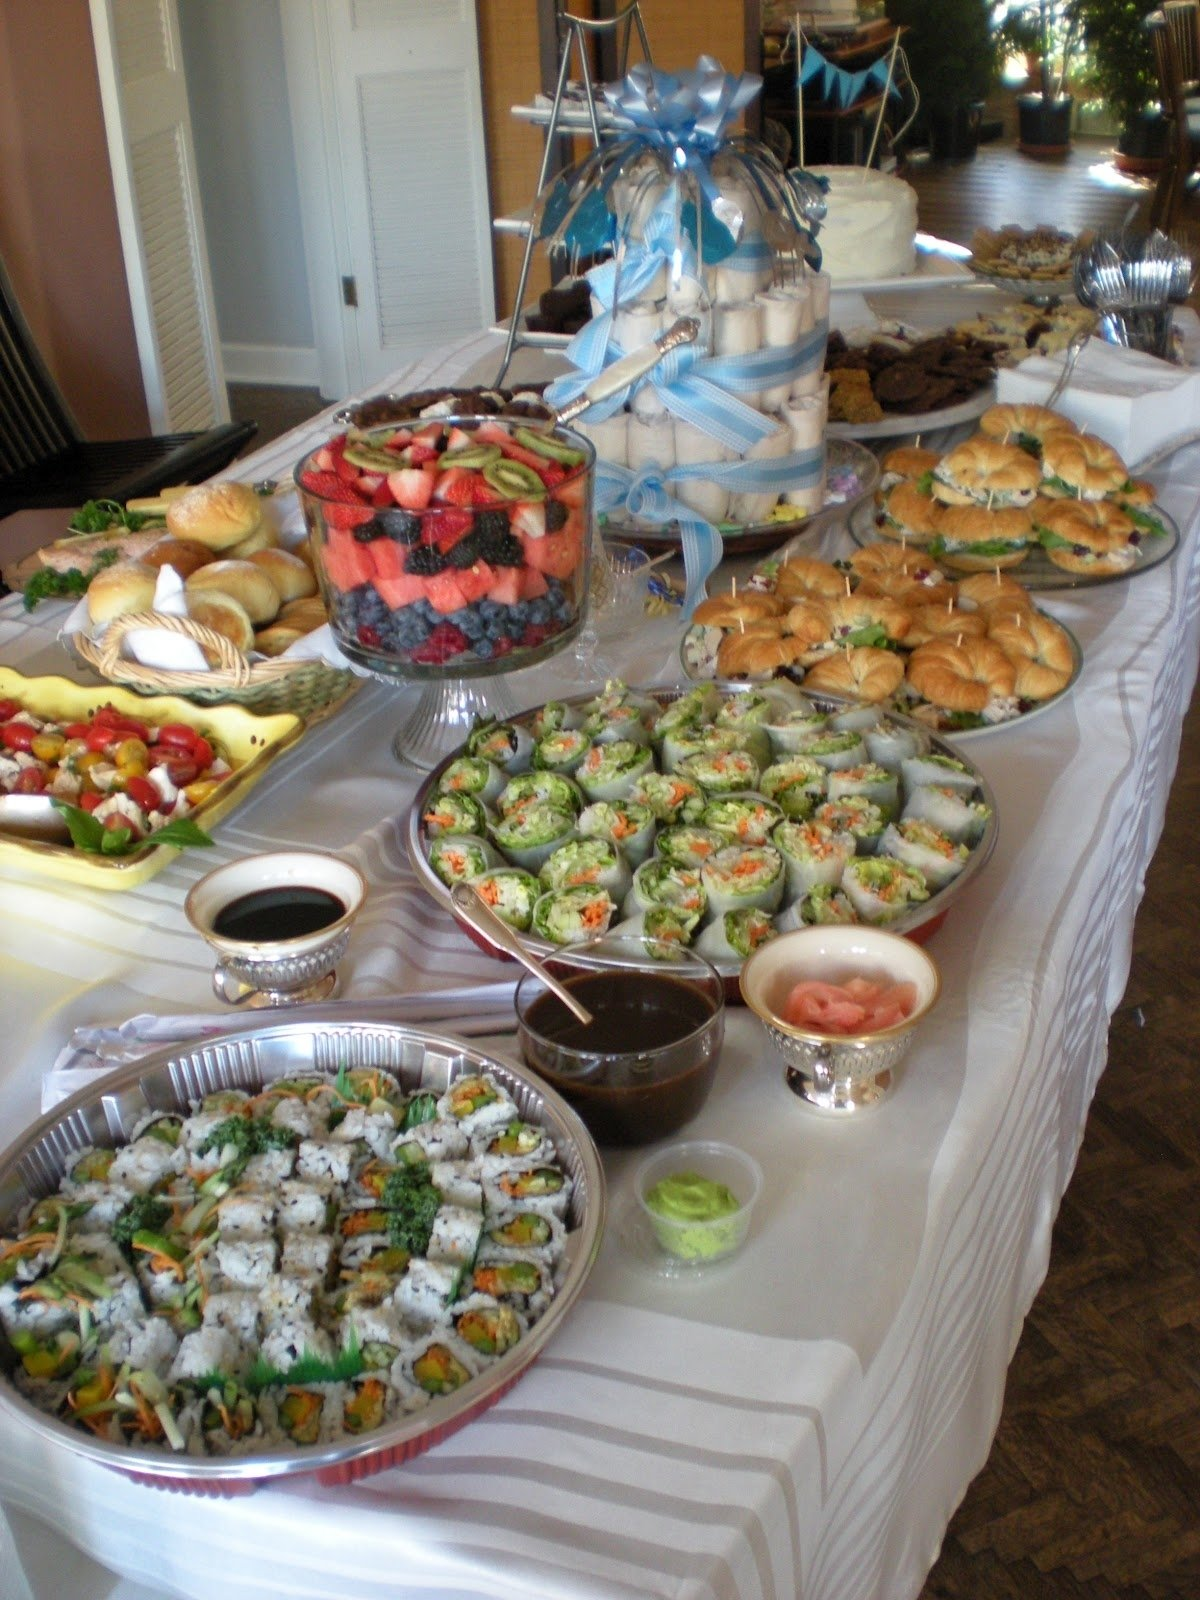 10 Spectacular Boy Baby Shower Food Ideas baby shower food ideas foods to serve 283 29 1200x1600 ebomb 2020